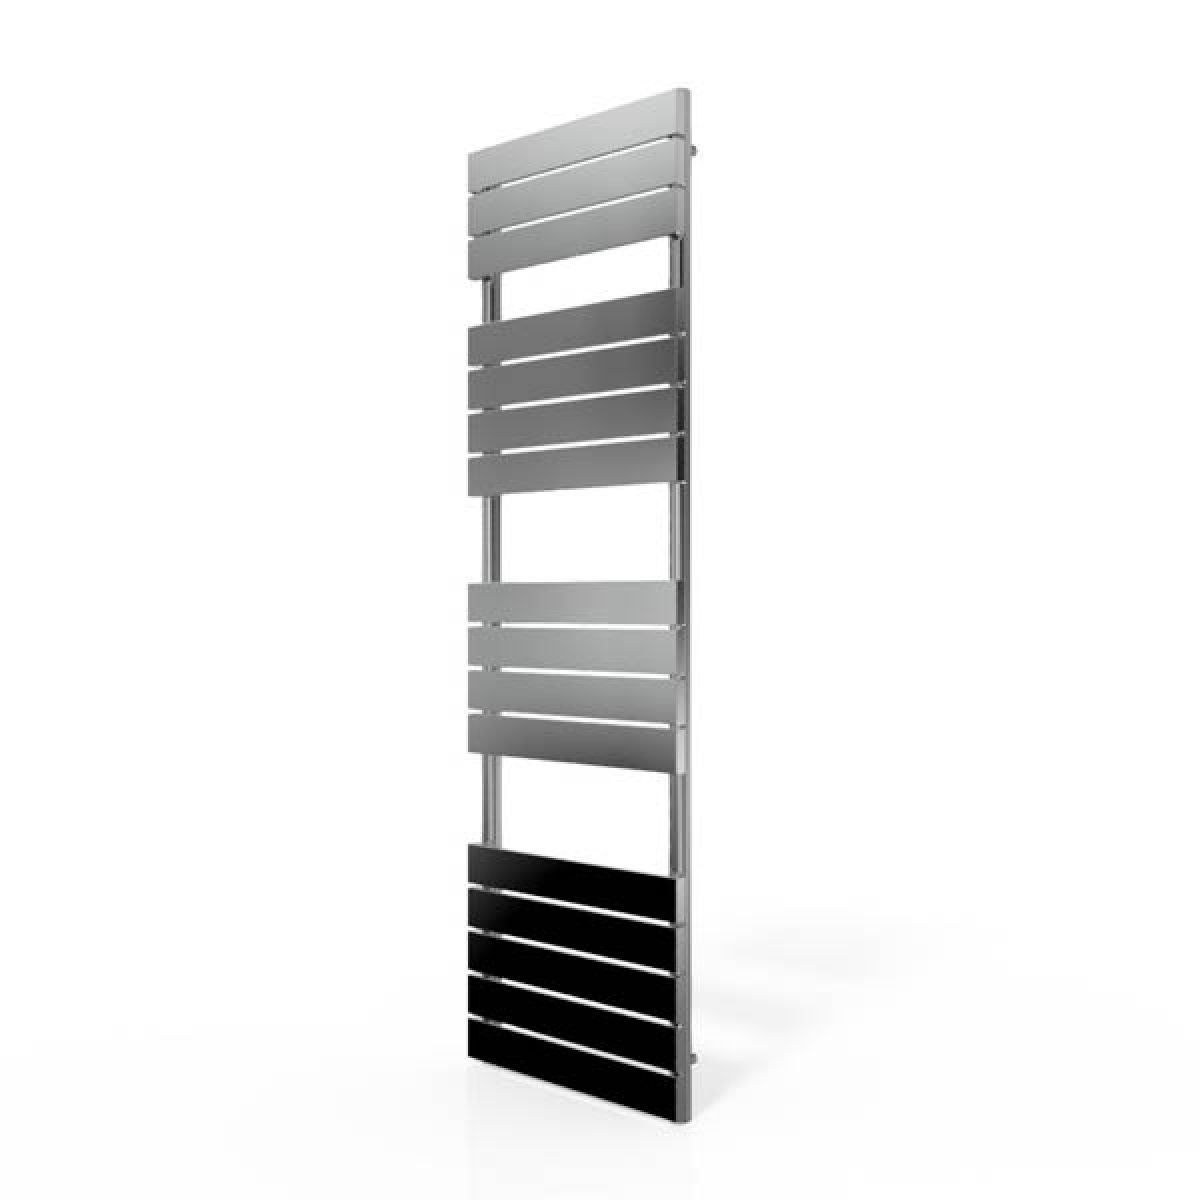 Cassellie Chrome Straight Towel Rail With Flat Profile 1600 x 500mm